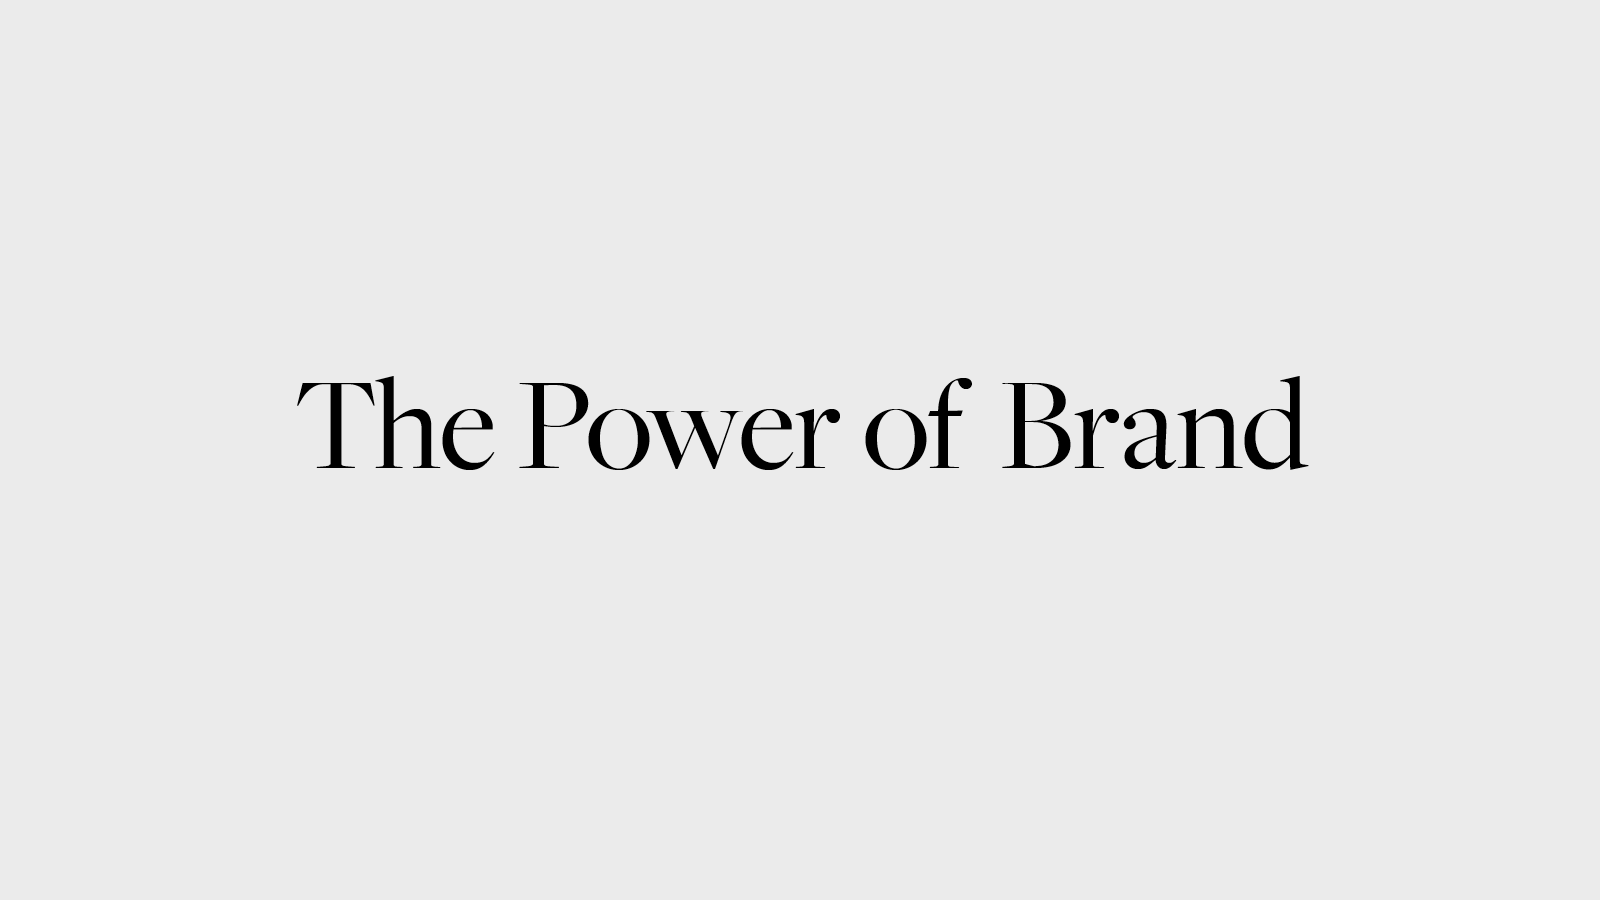 The Power of Brand graphic